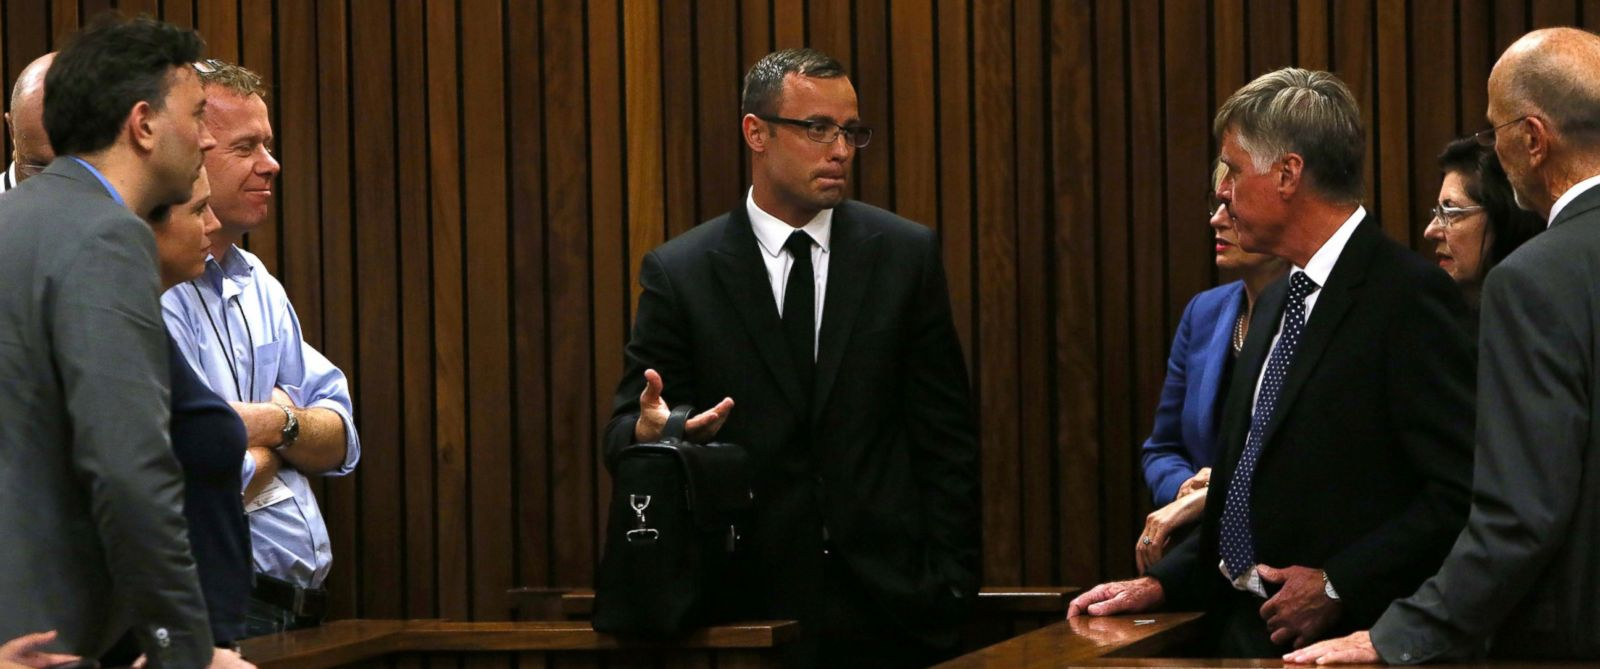 PHOTO: Oscar Pistorius, speaks with family and friends at right as press look on, March 25, 2014 in Pretoria, South Africa.